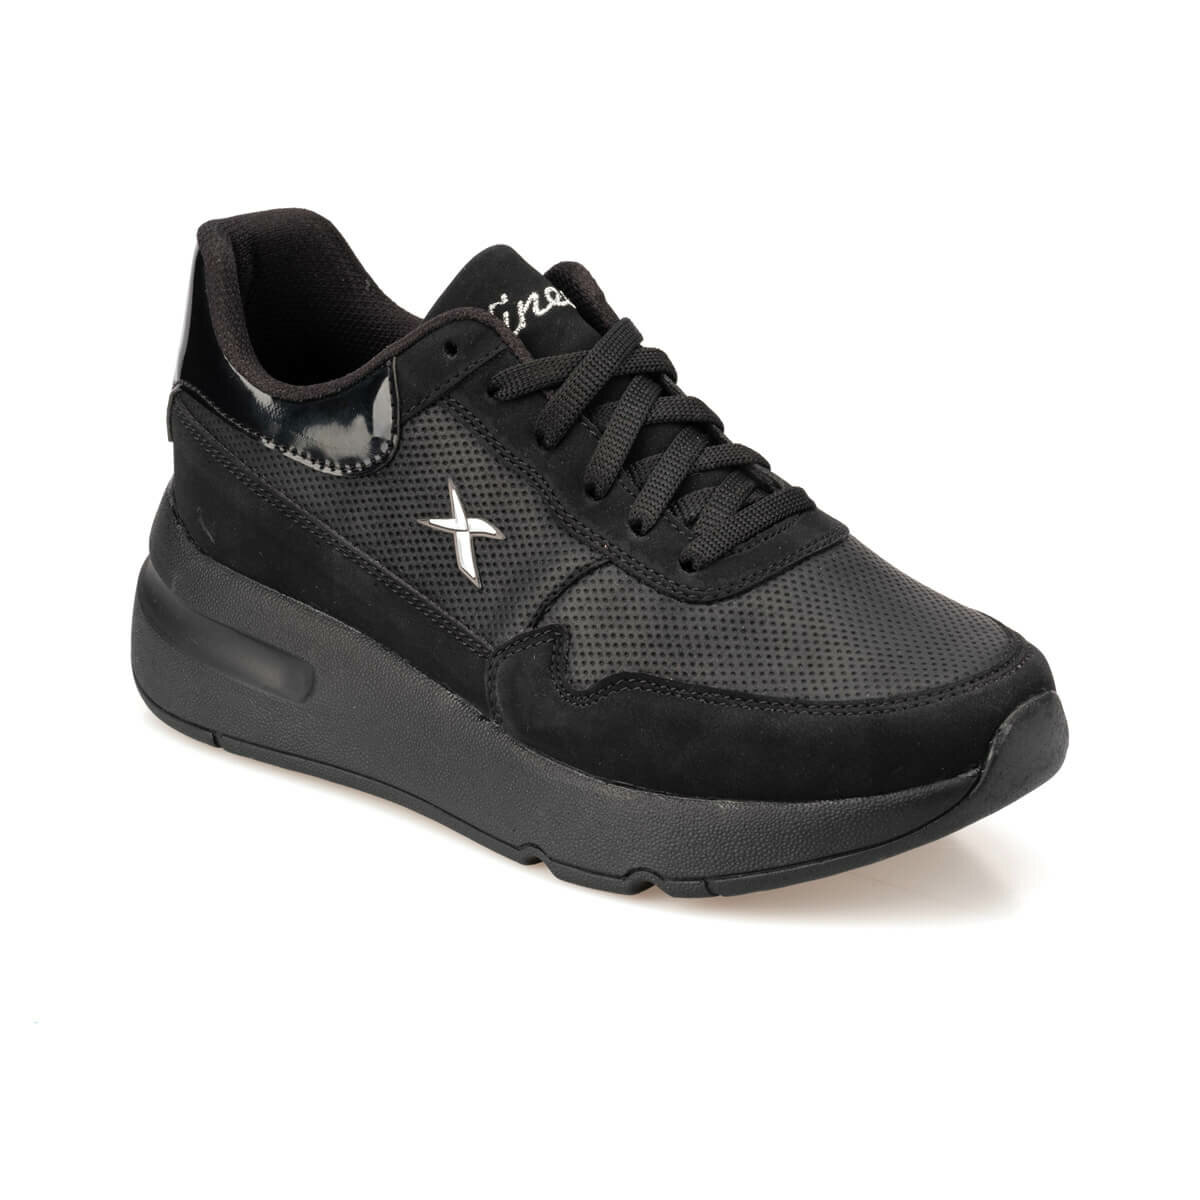 FLO VIRGIN 9PR Black Women 'S Sneaker Shoes KINETIX